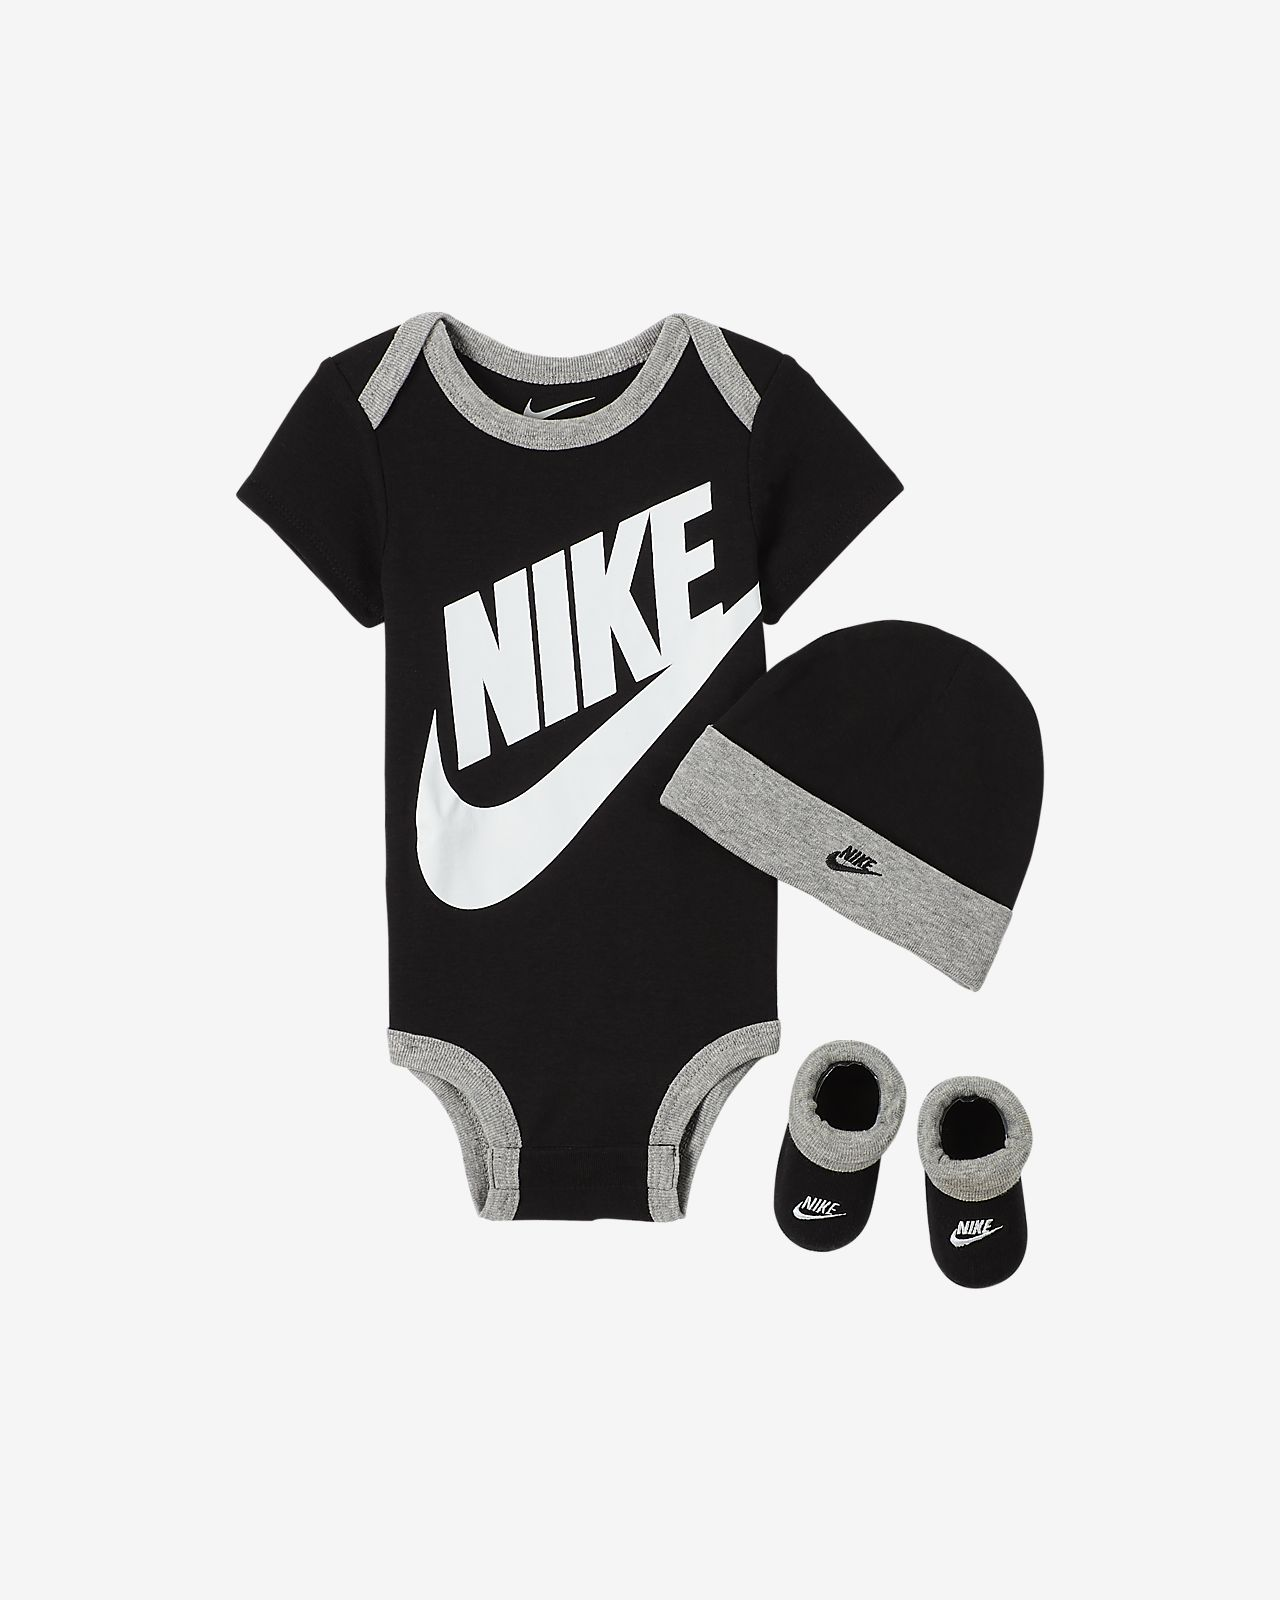 Nike Baby Bodysuit, Hat and Booties Set